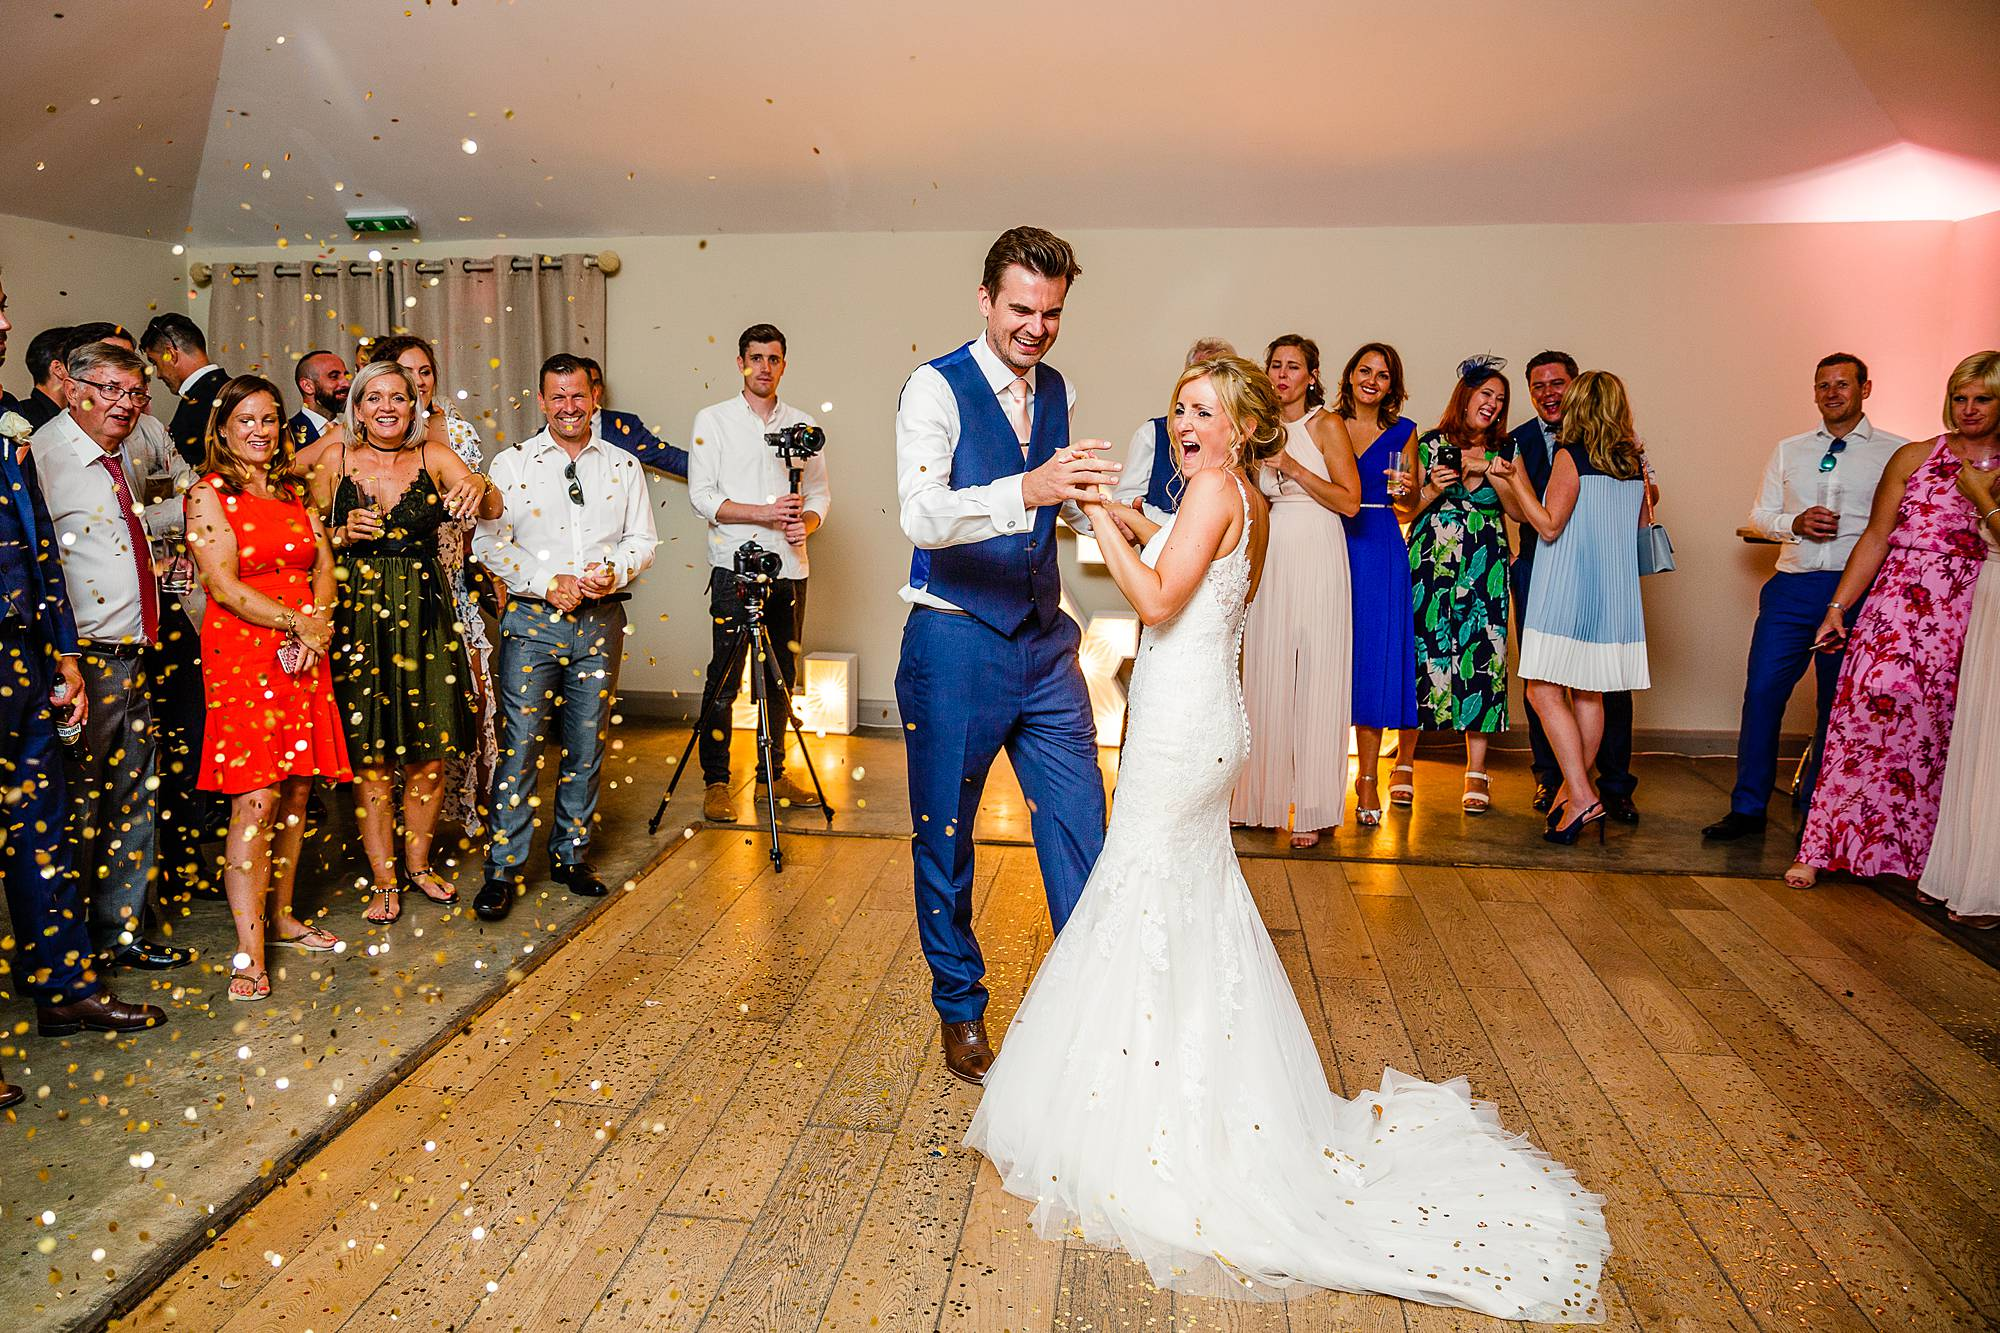 Houchins Essex Wedding Photographer_0104.jpg